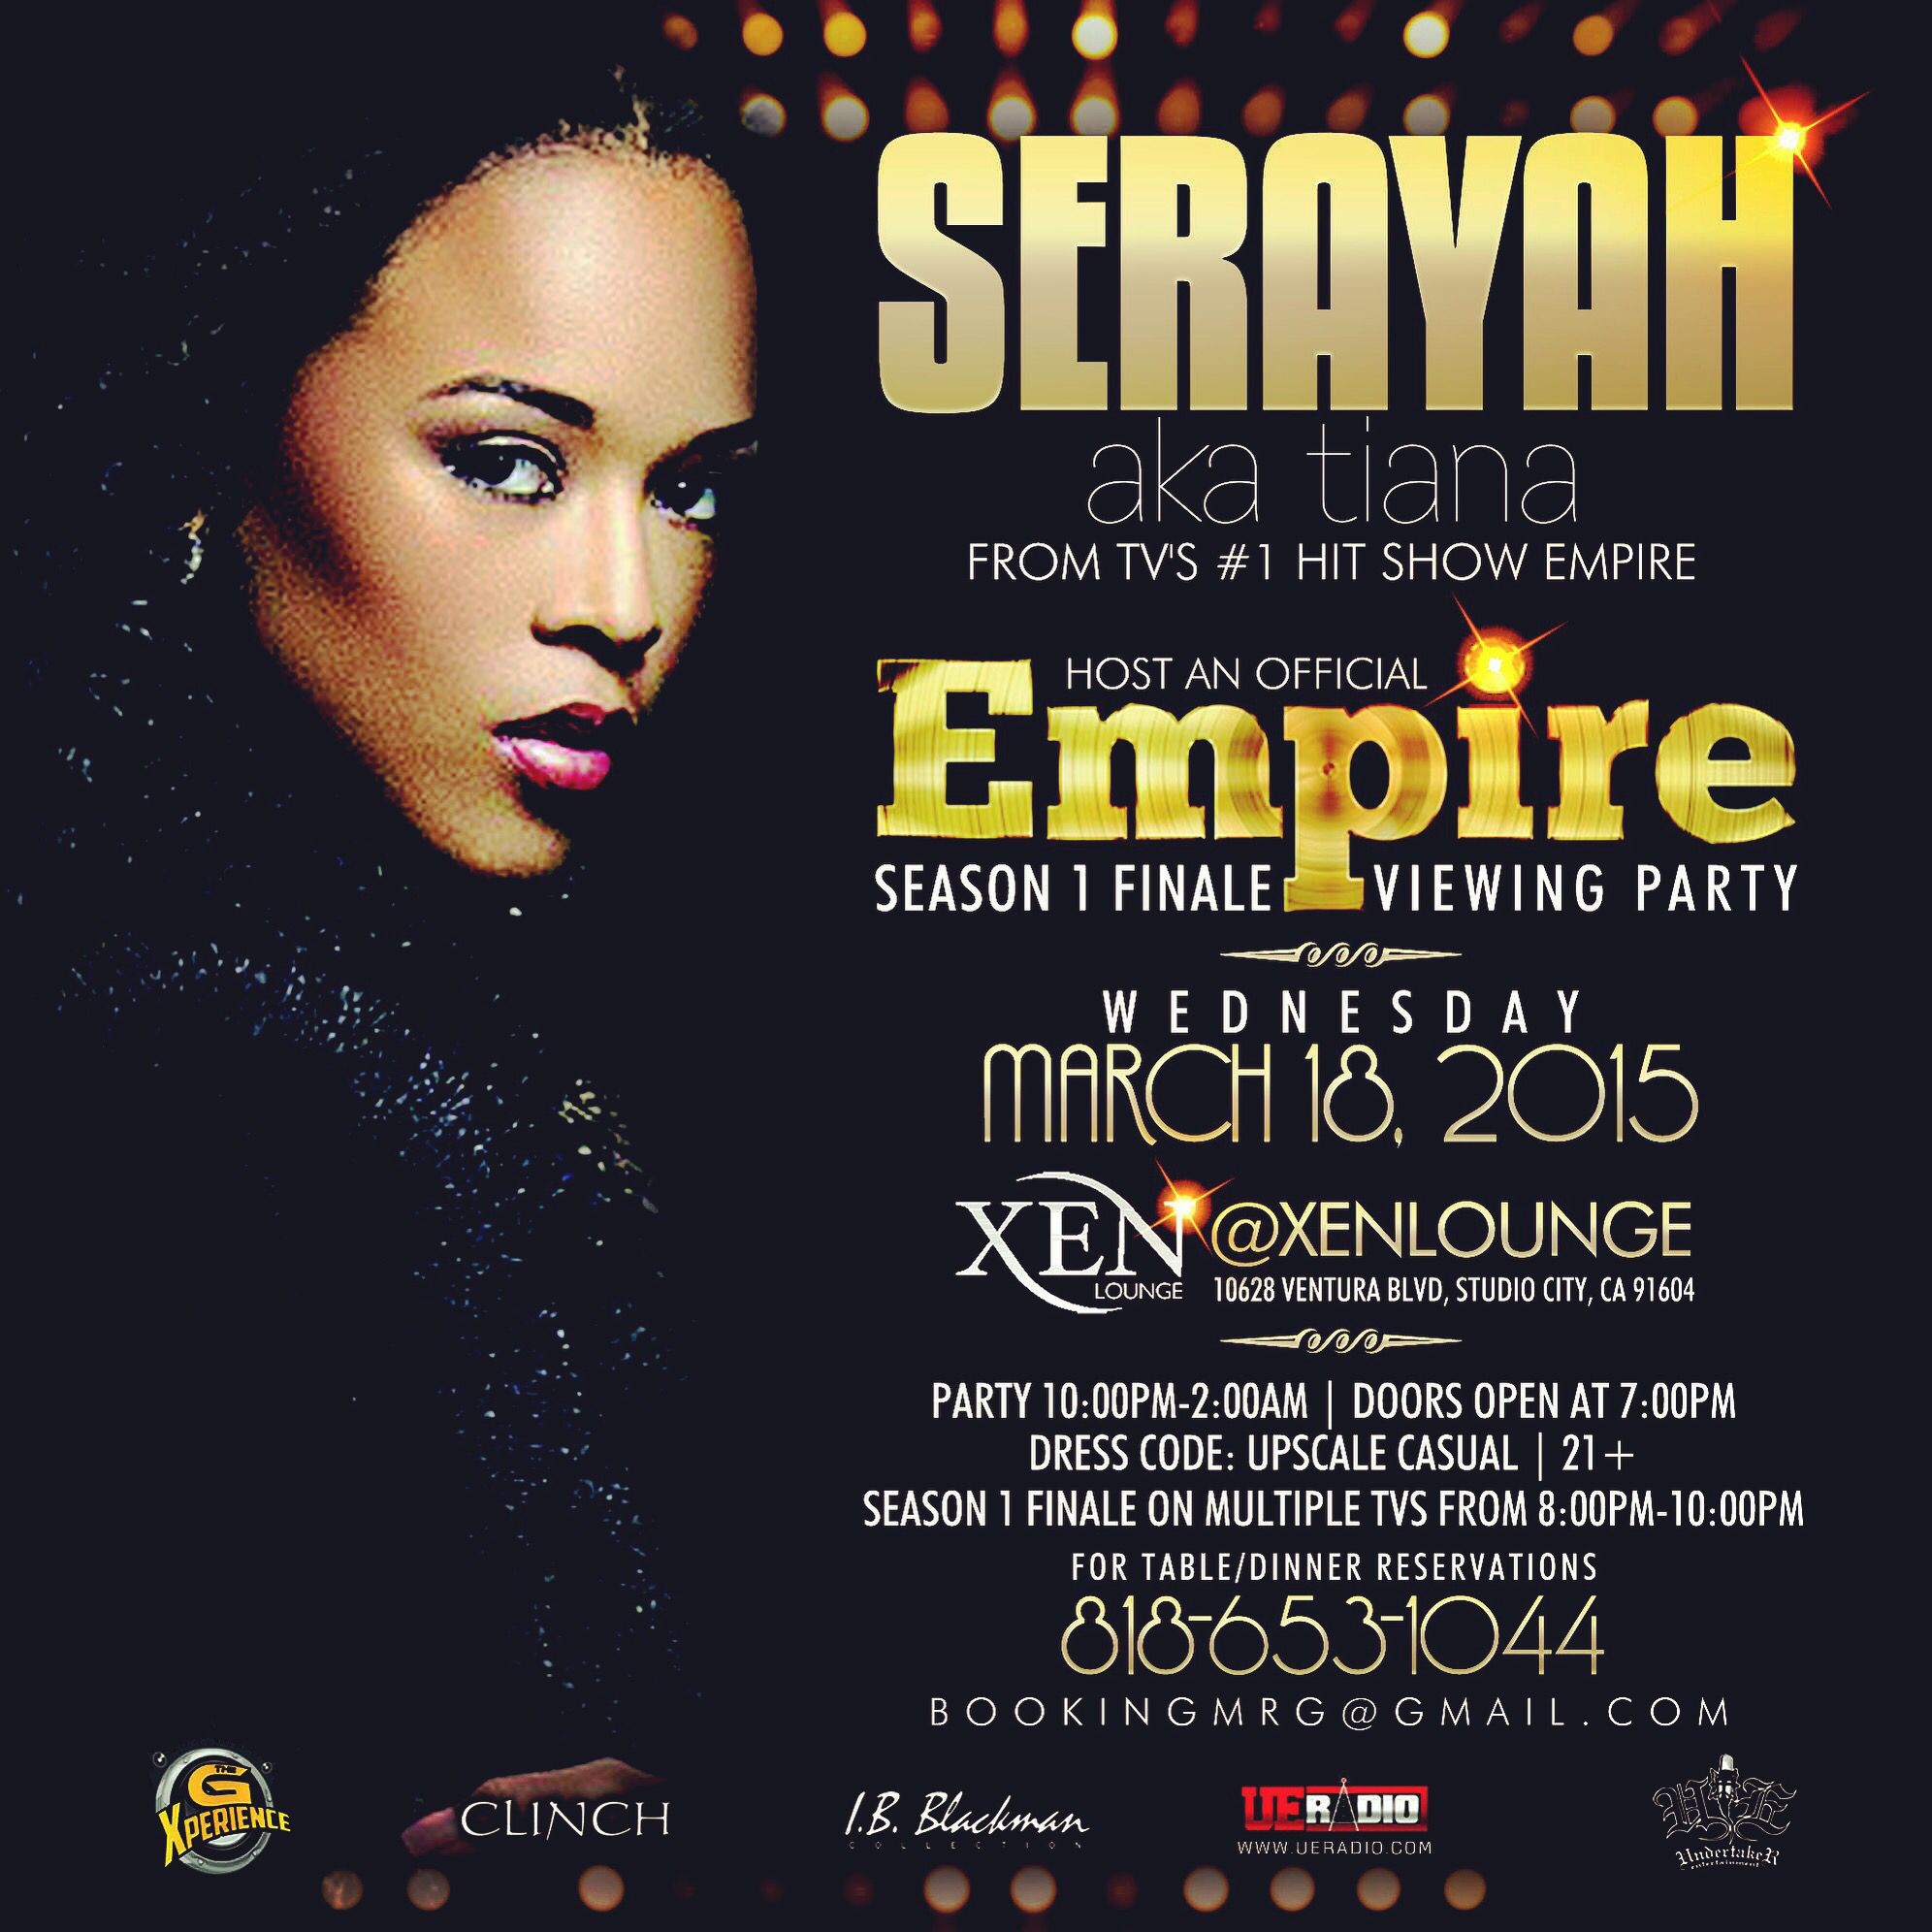 Tonight It S Going Down At Xen Lounge A Special Empire Season 1 Finale Viewing Party Brought To You By Cast Memb Viewing Party Empire Season It S Going Down